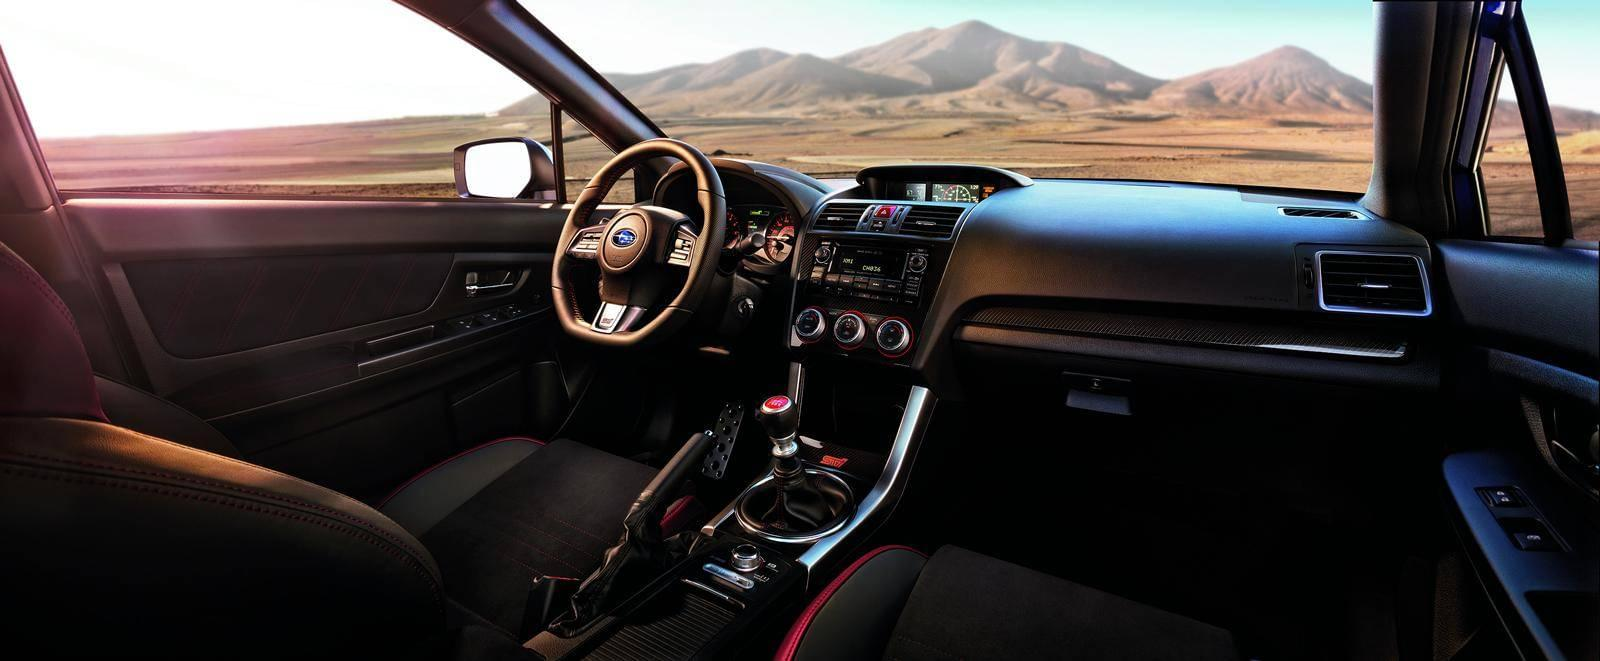 Interior view of 2015 Used Subaru STI overlooking plains and mountains